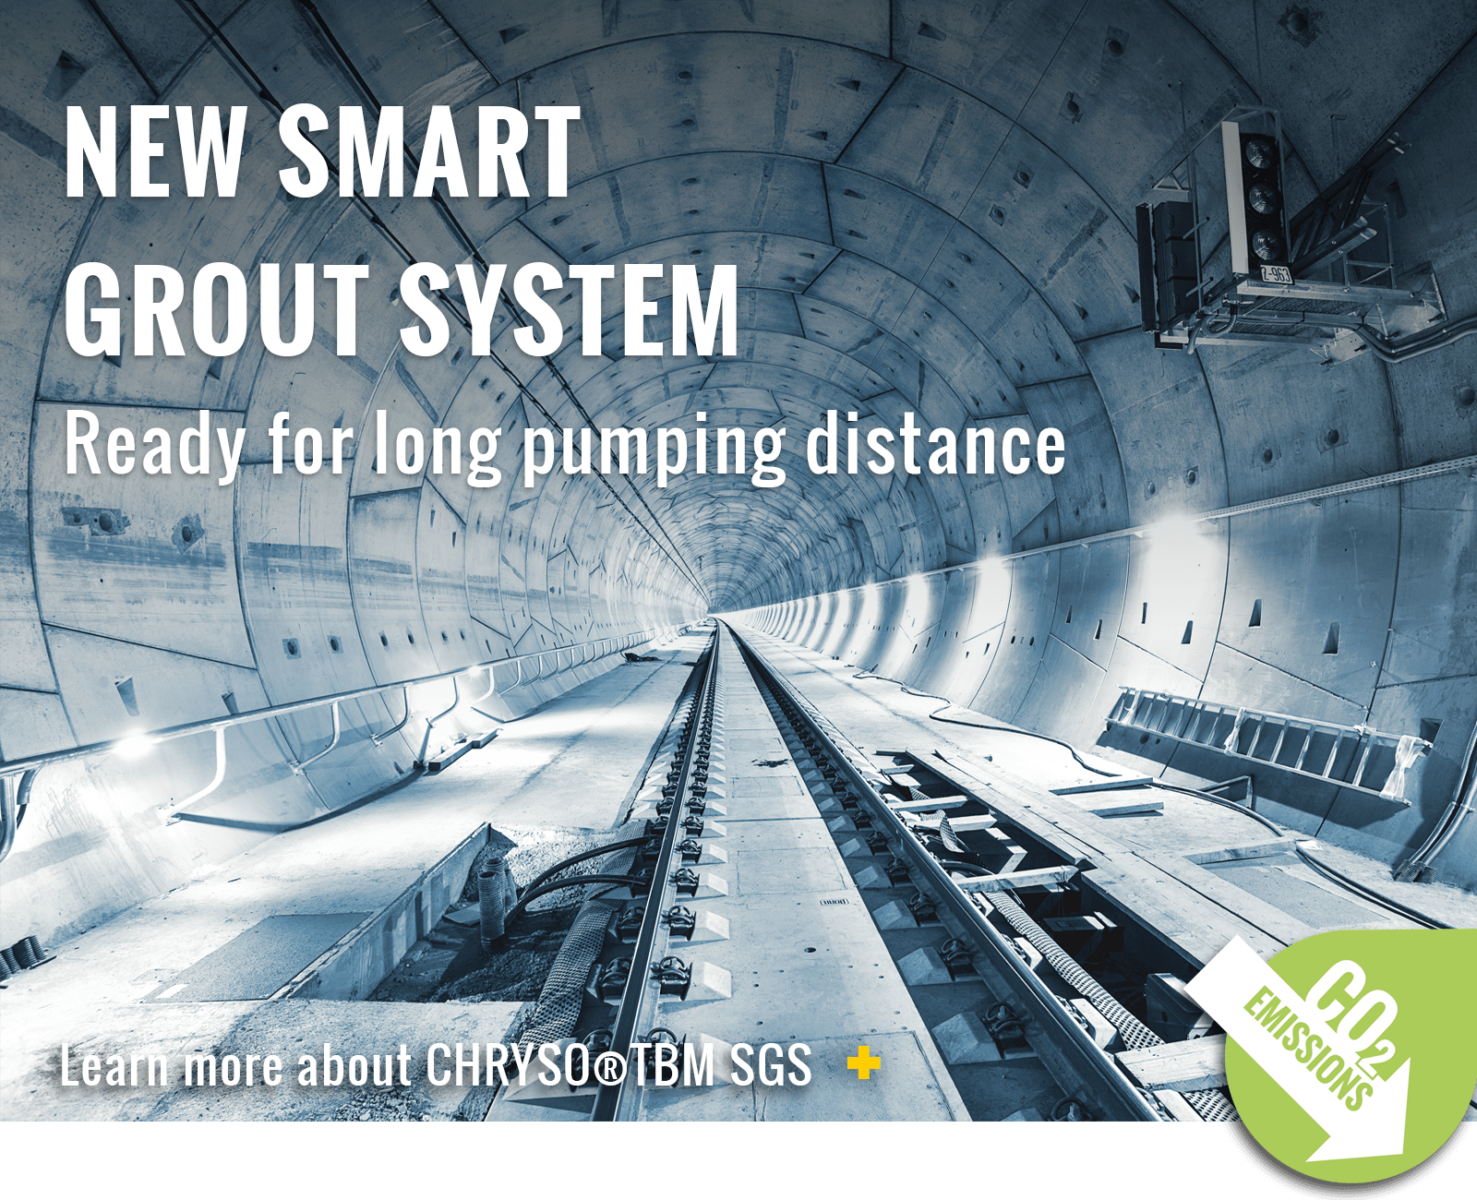 New smart grout system